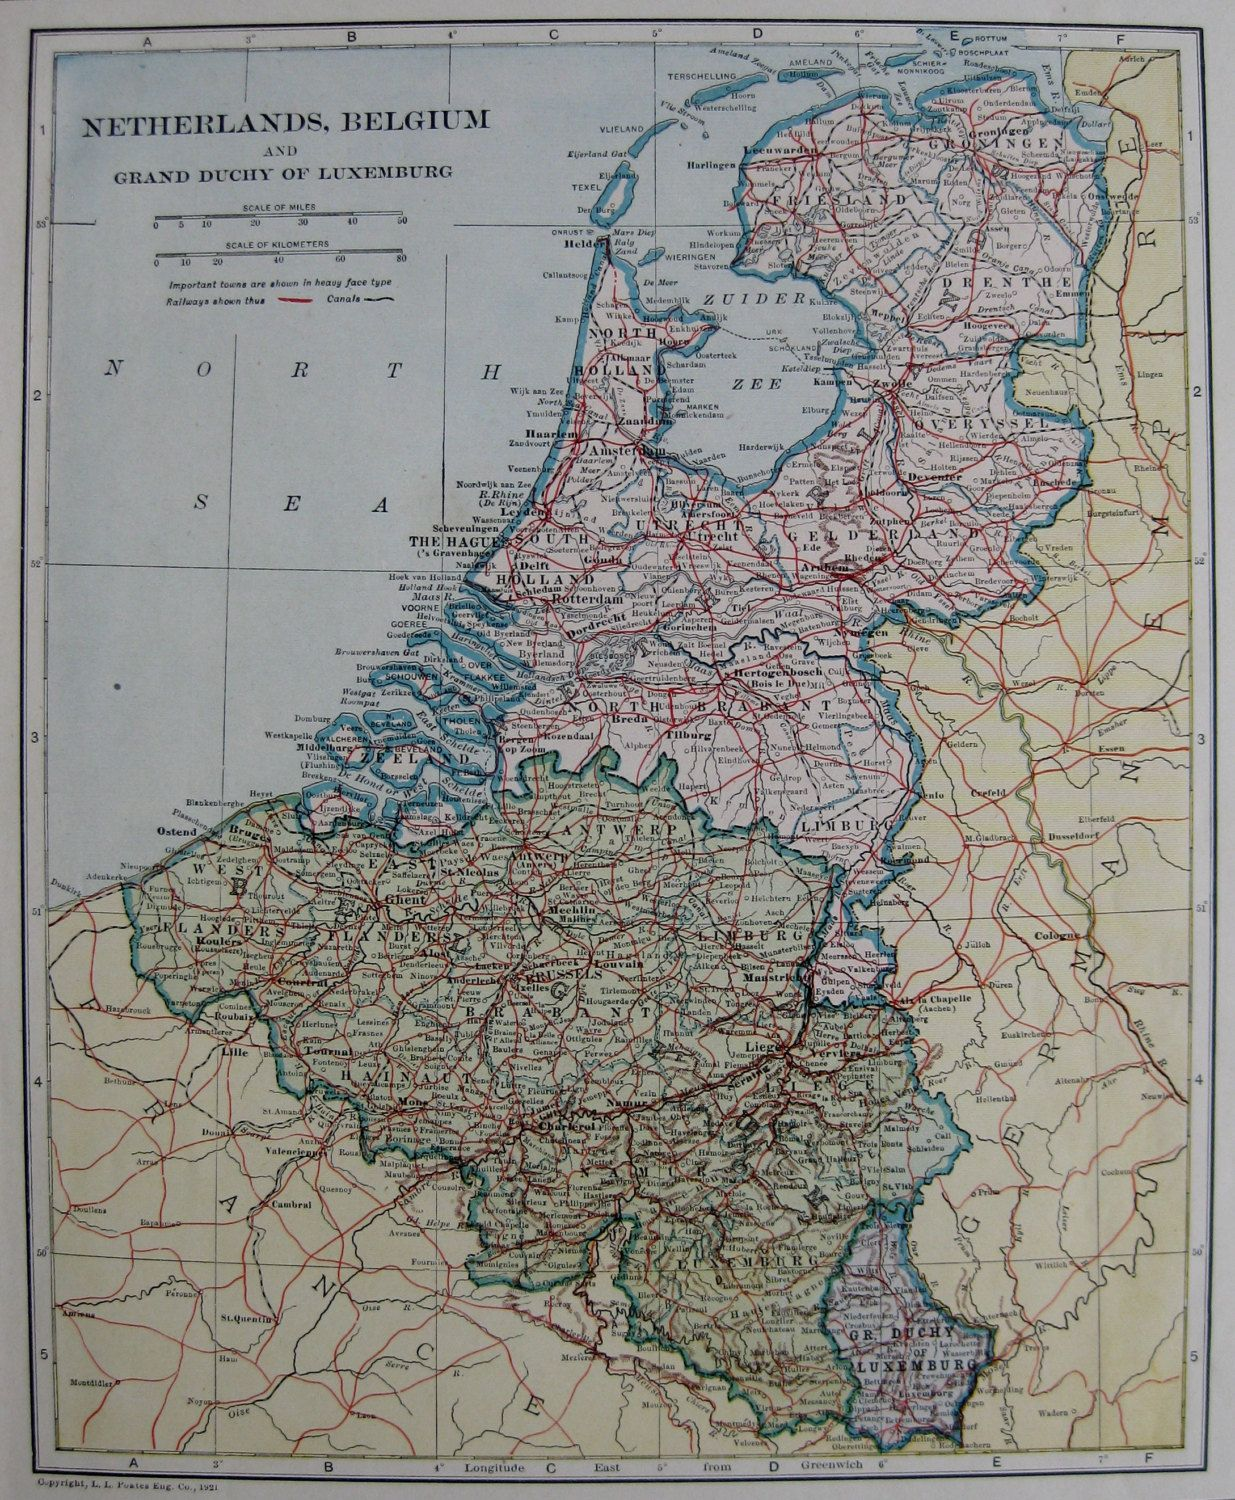 1922 Antique NETHERLANDS Map and BELGIUM Map